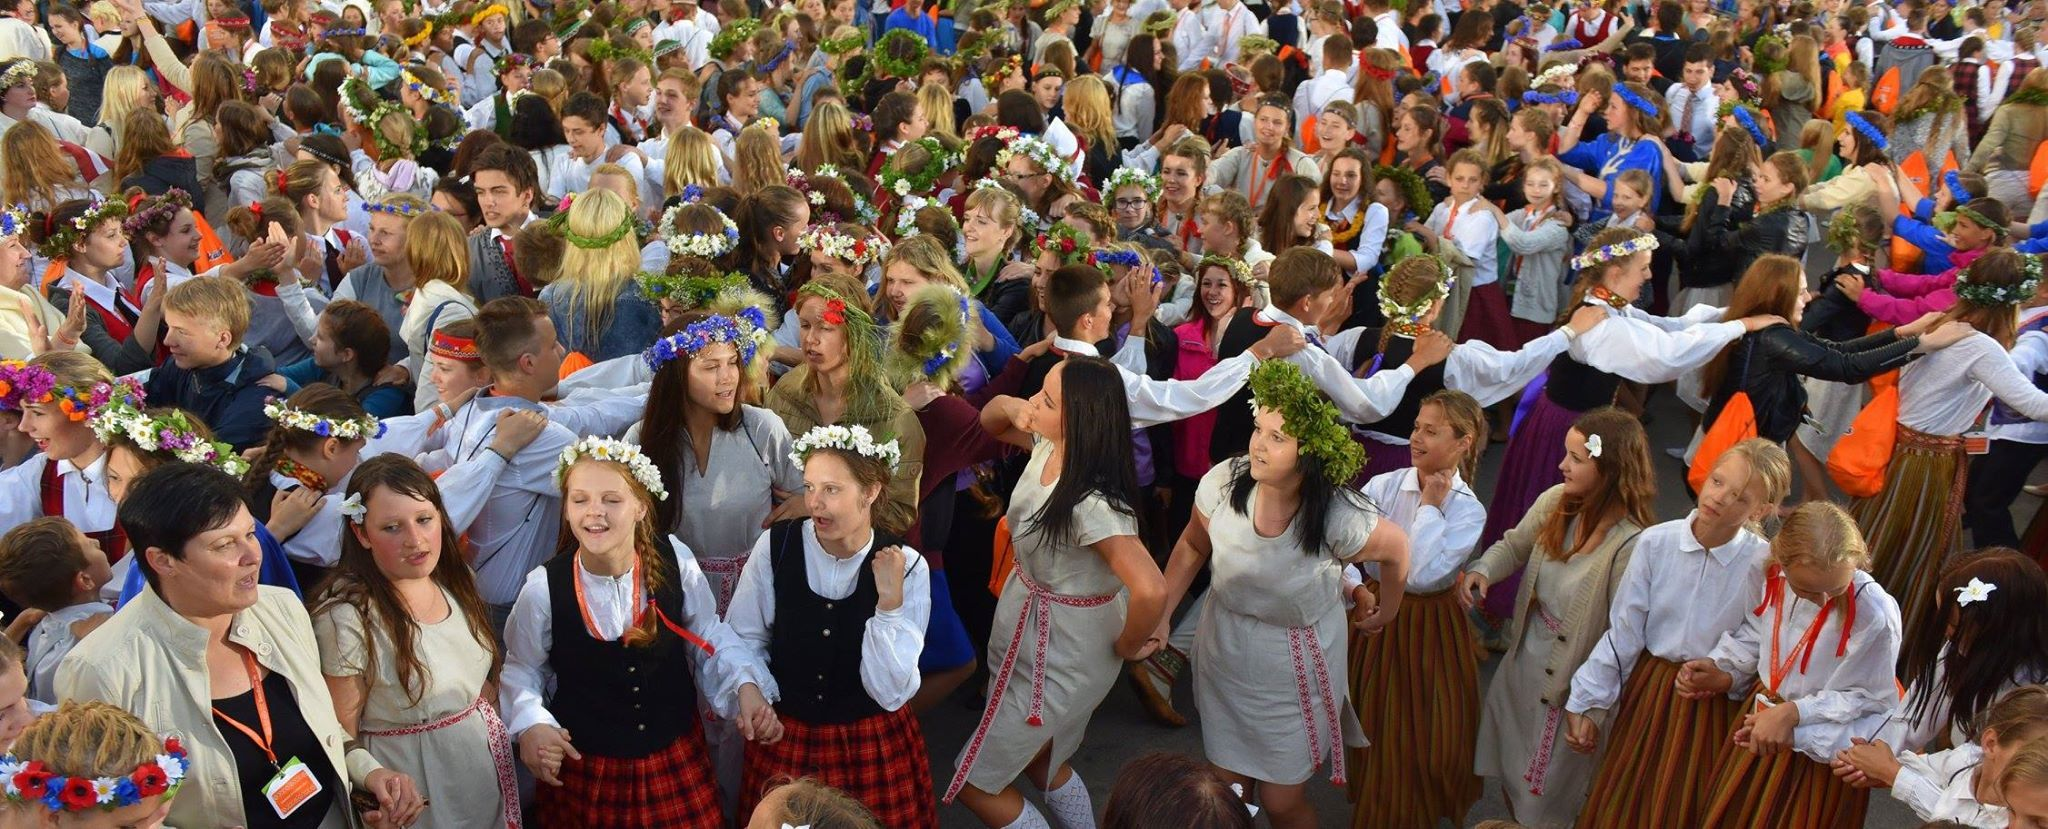 11th latvian school youth song and dance festival in riga